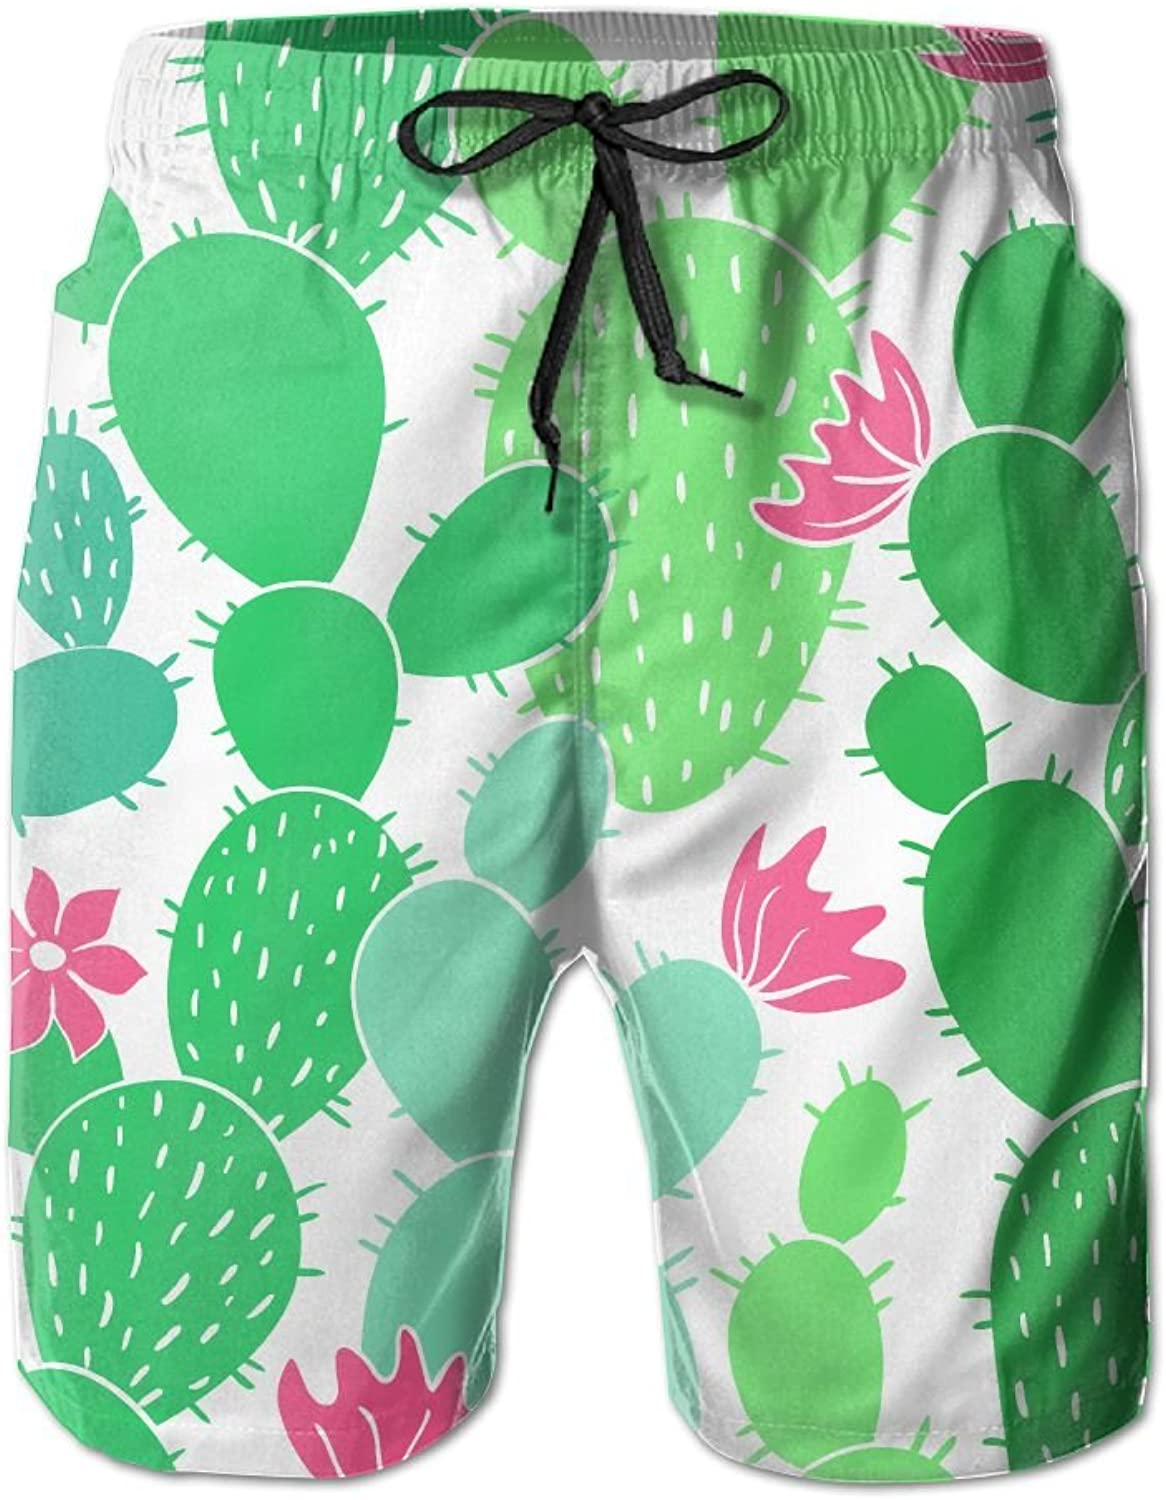 139c9ff066 Tydo Cacti Cactus Pattern Men's Beach Shorts Classic Swim Trunks Trunks  Trunks Surf Board Pants With Pockets For Men 062a5f